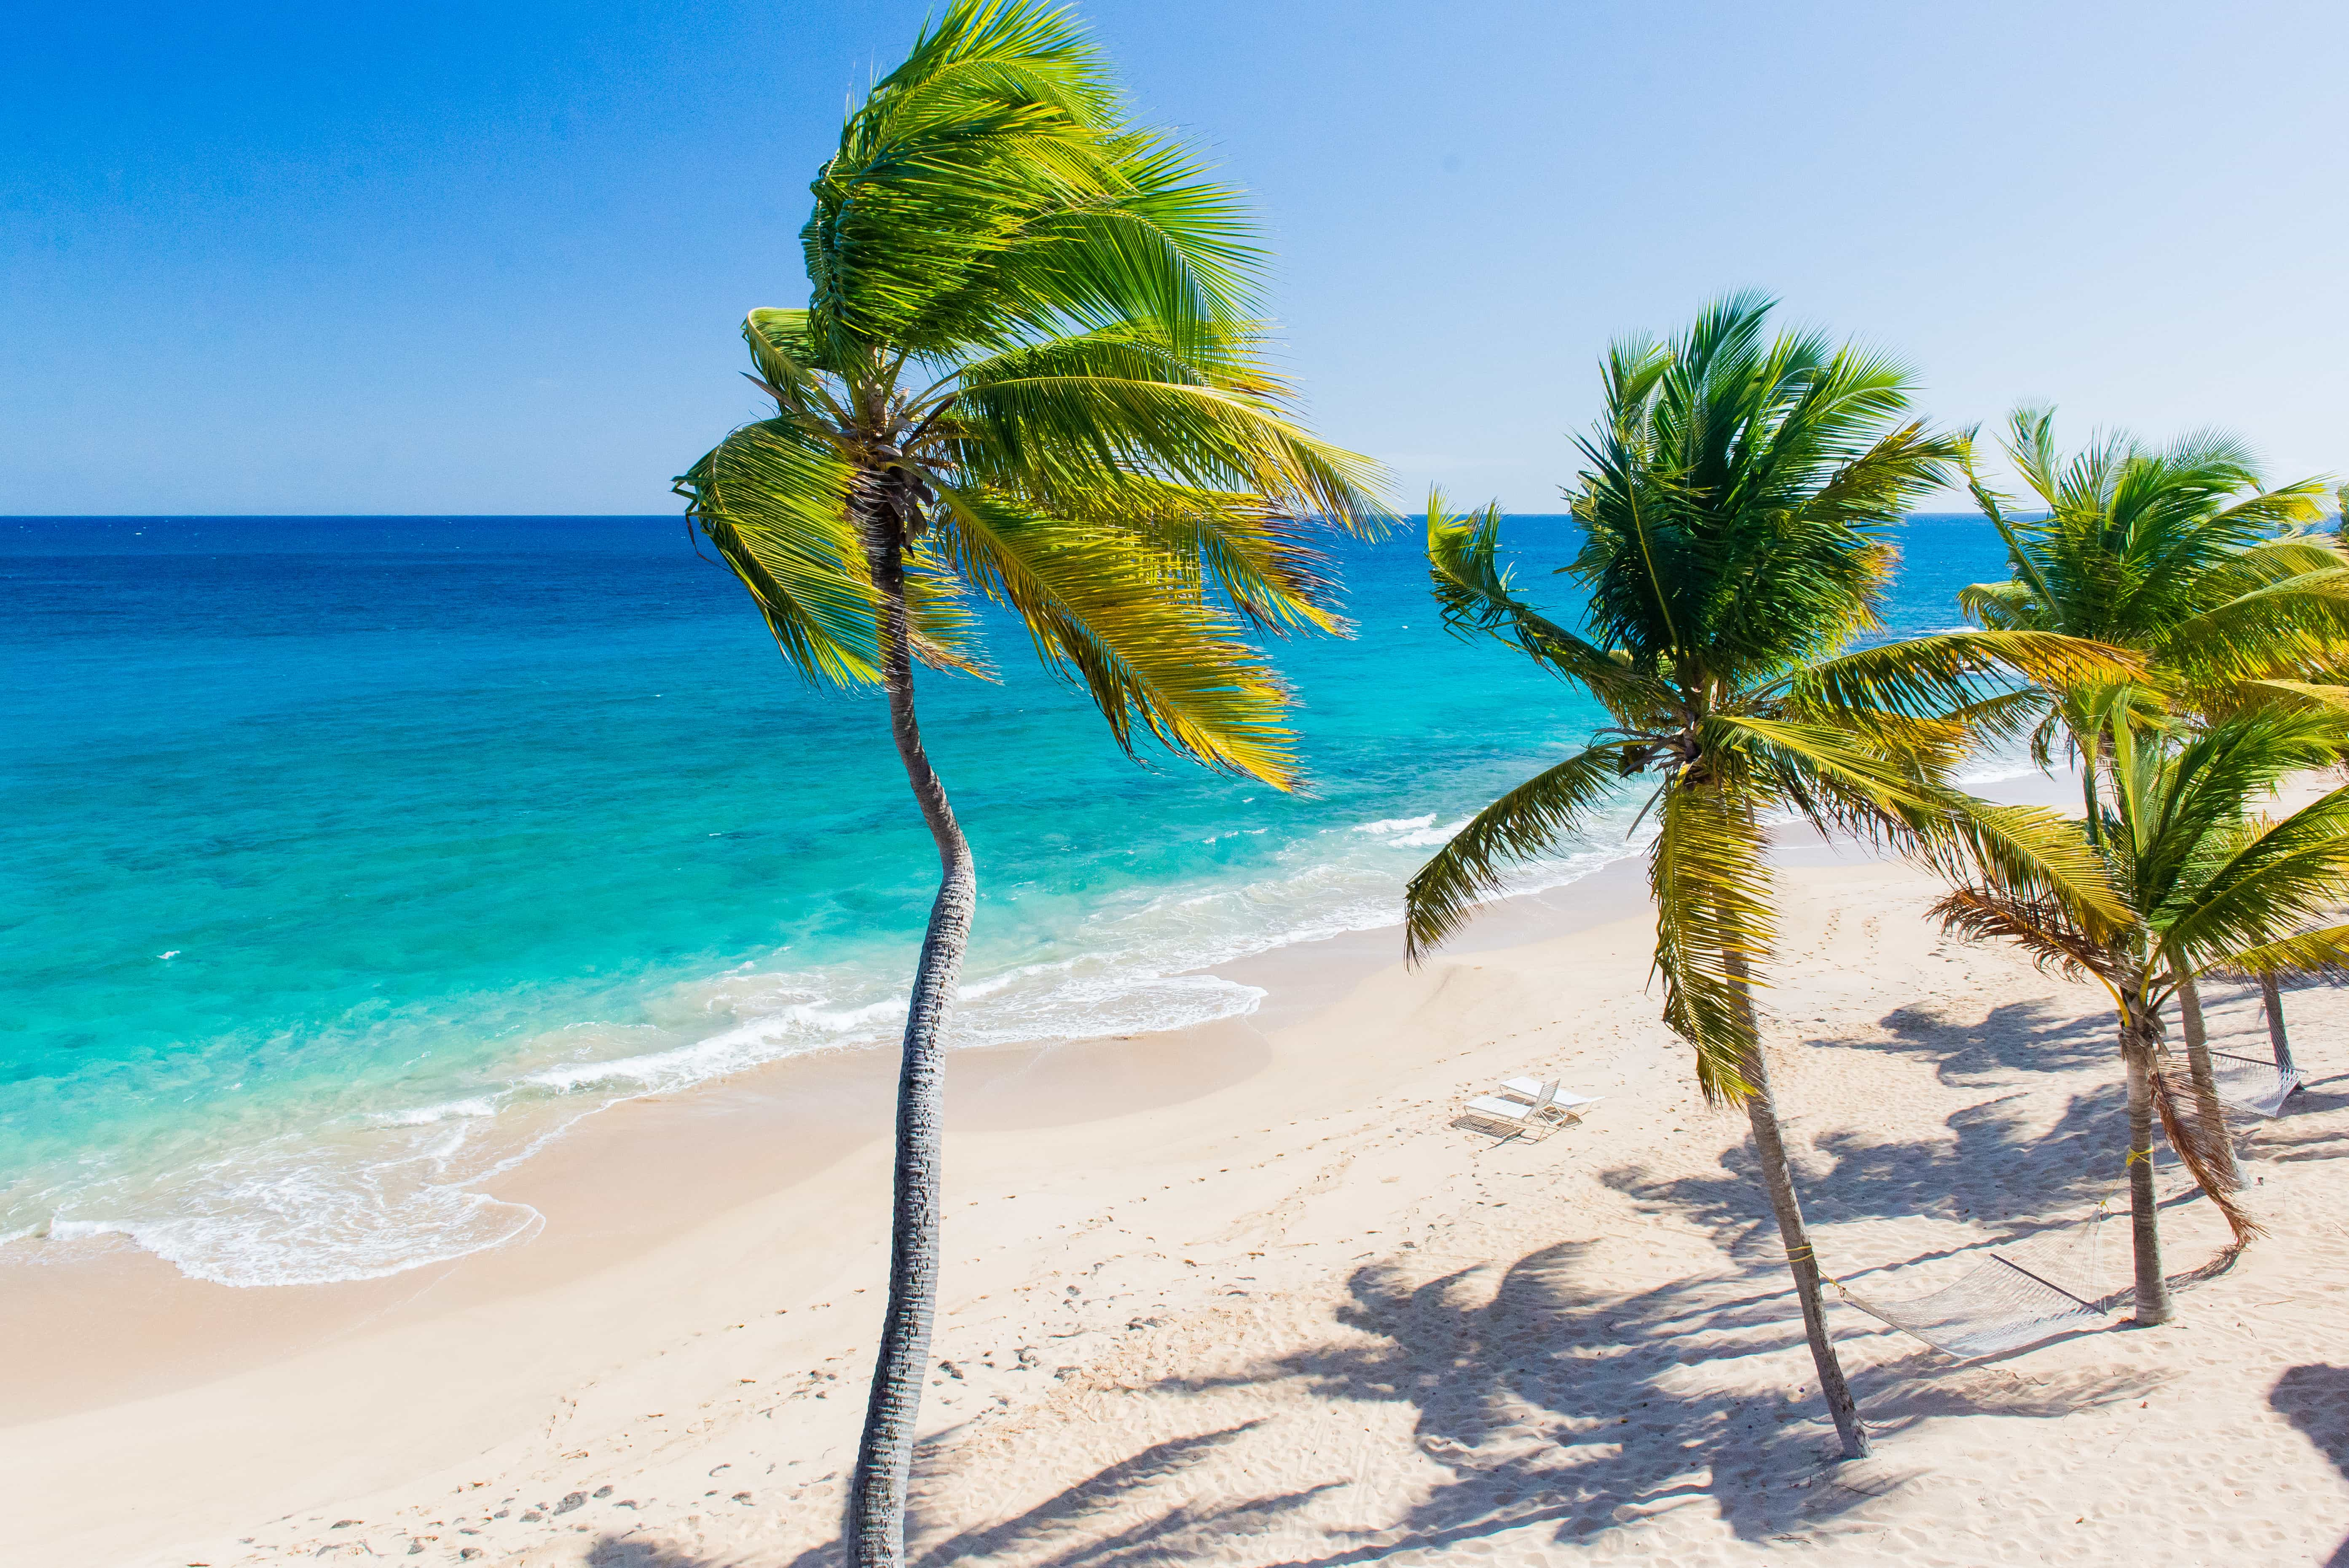 This is just one of the beaches at Curtain Bluff.